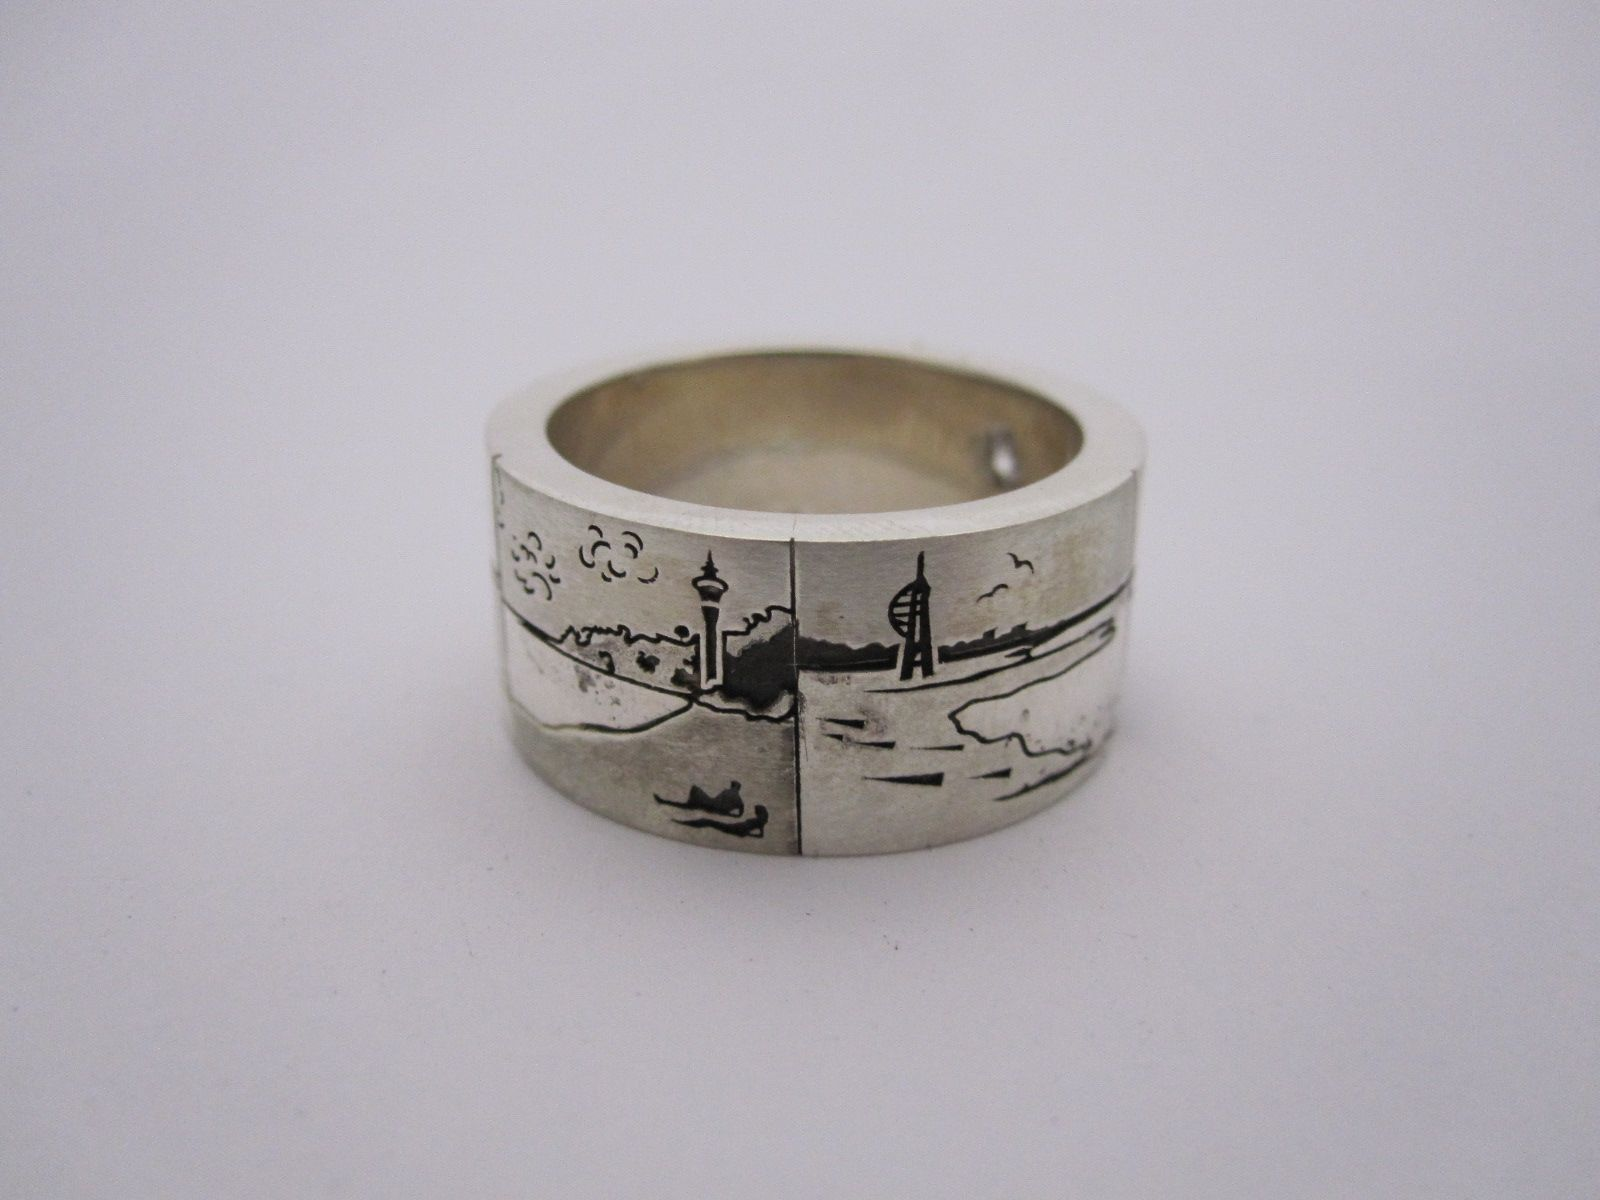 Put your favorite New Zealand image on your wedding band by